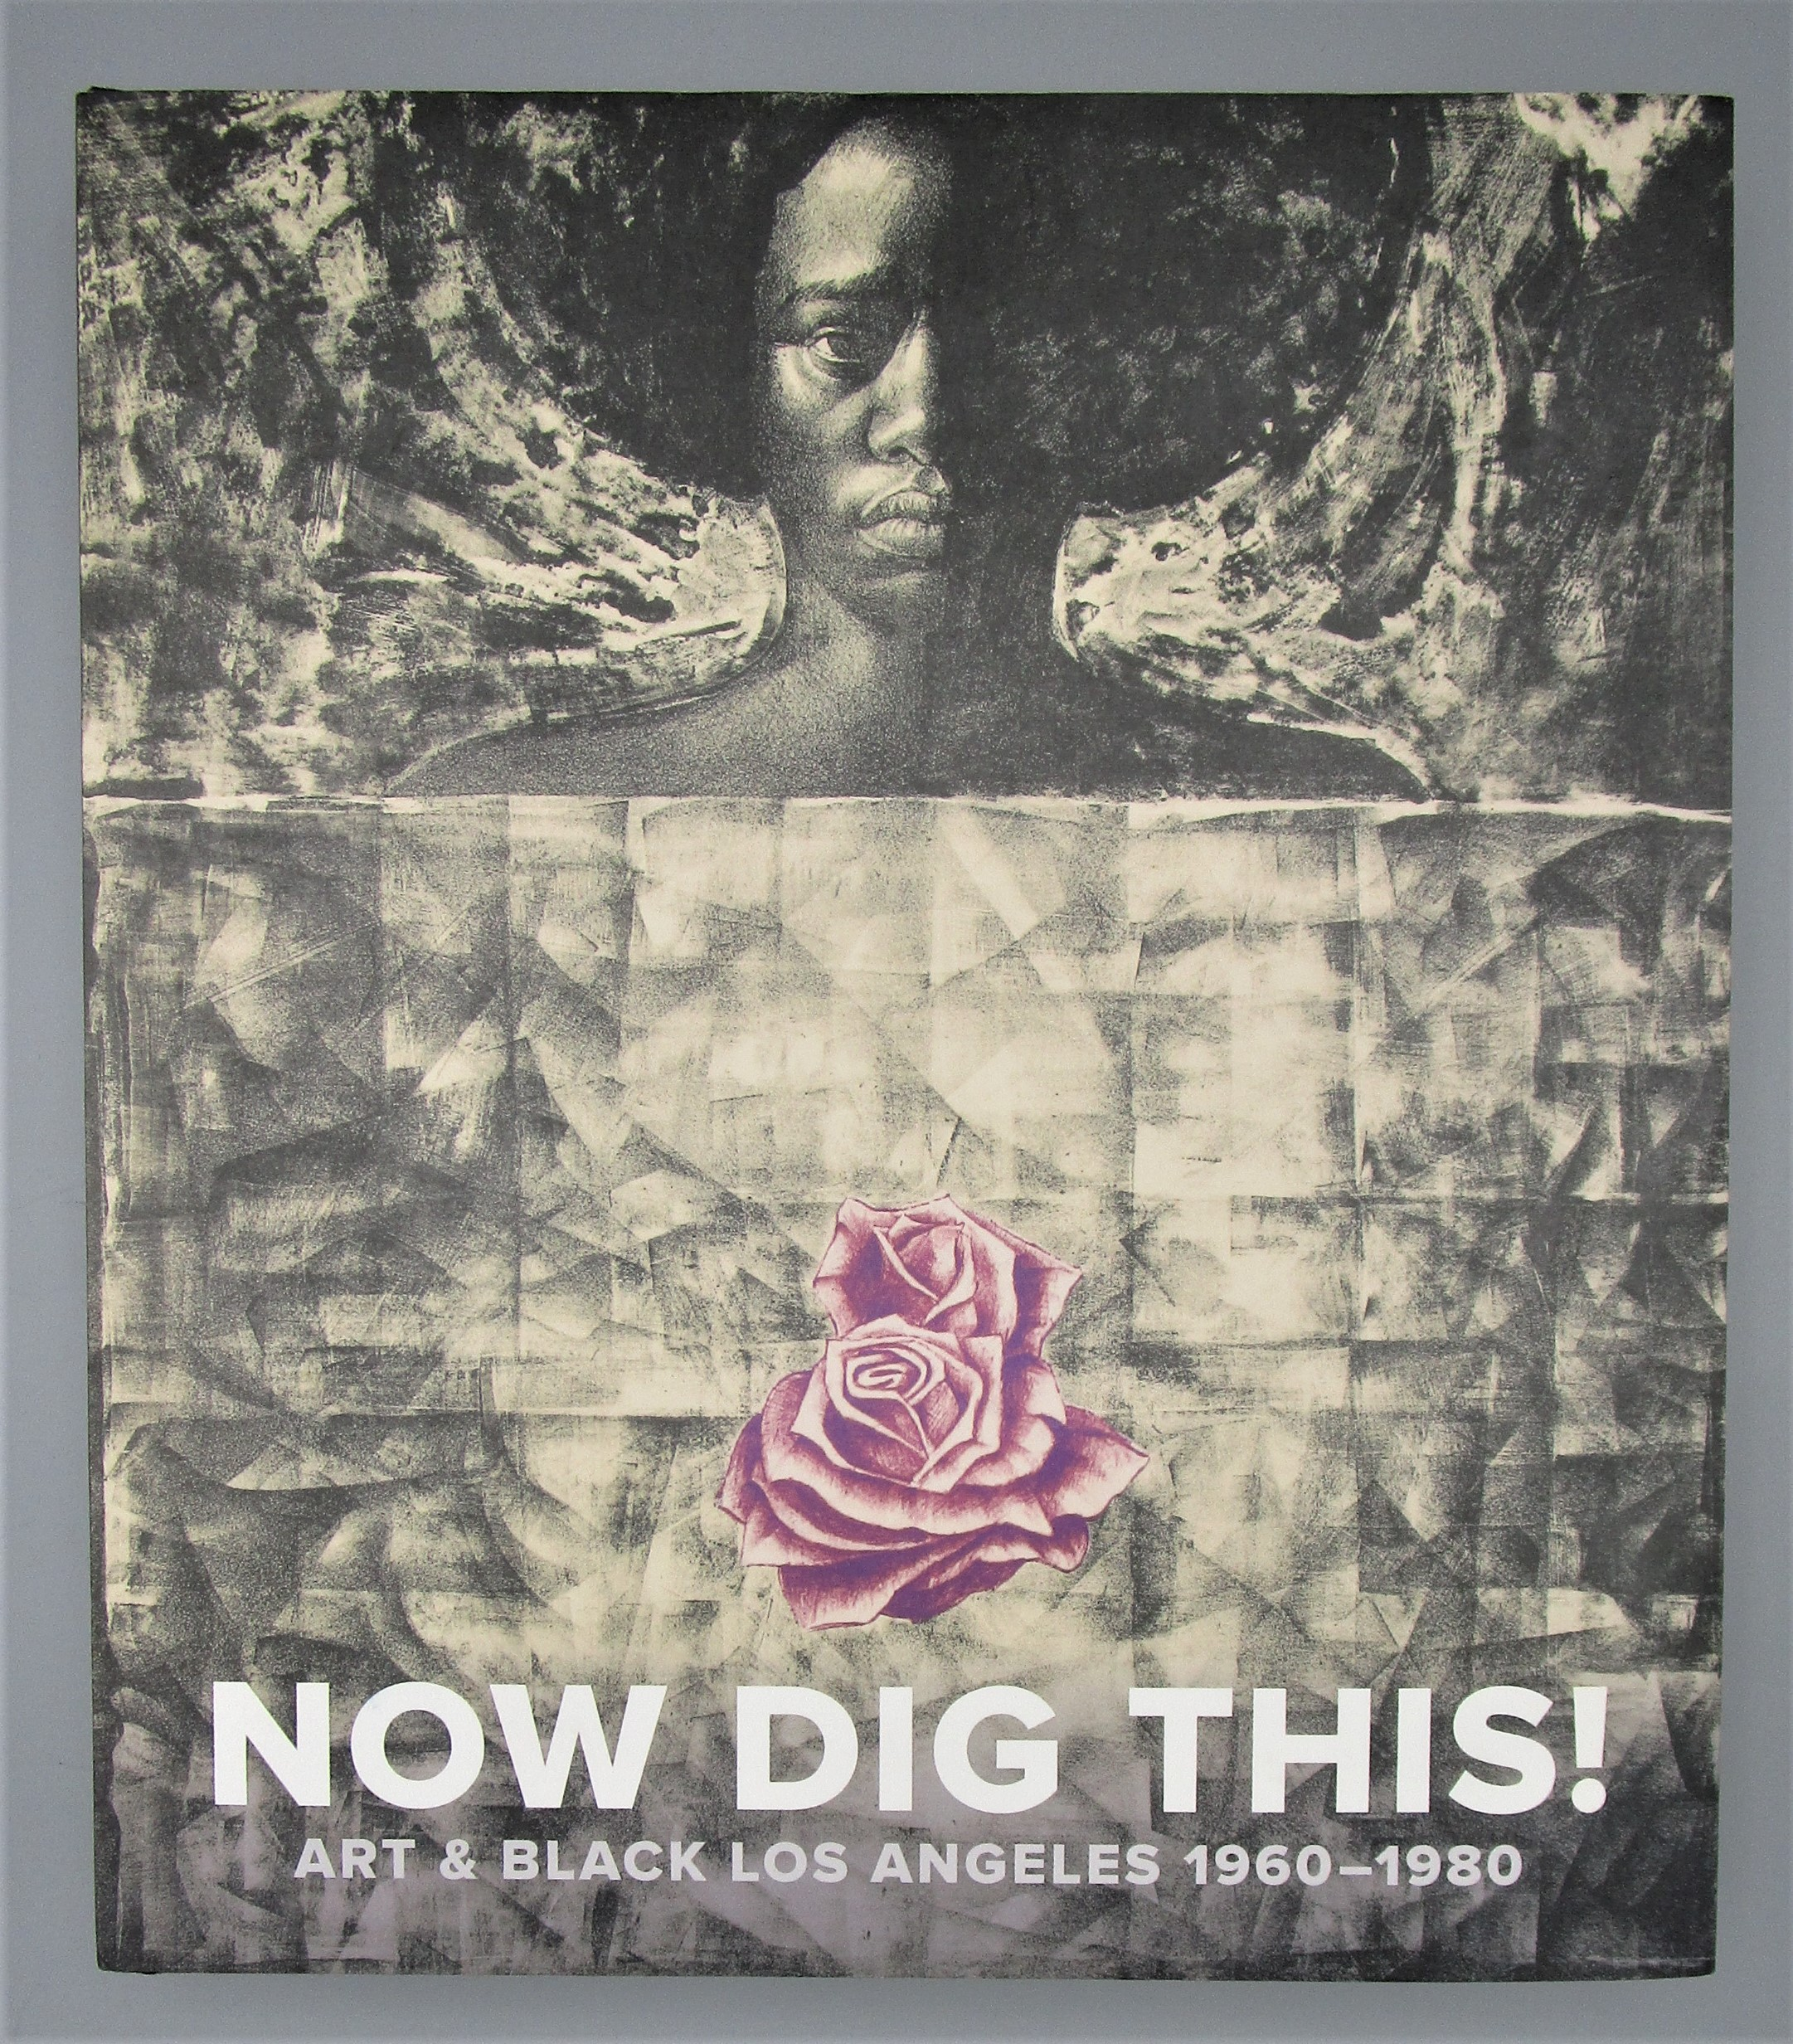 NOW DIG THIS! : ART & BLACK LOS ANGELES 1960 - 1980, by  - 2011